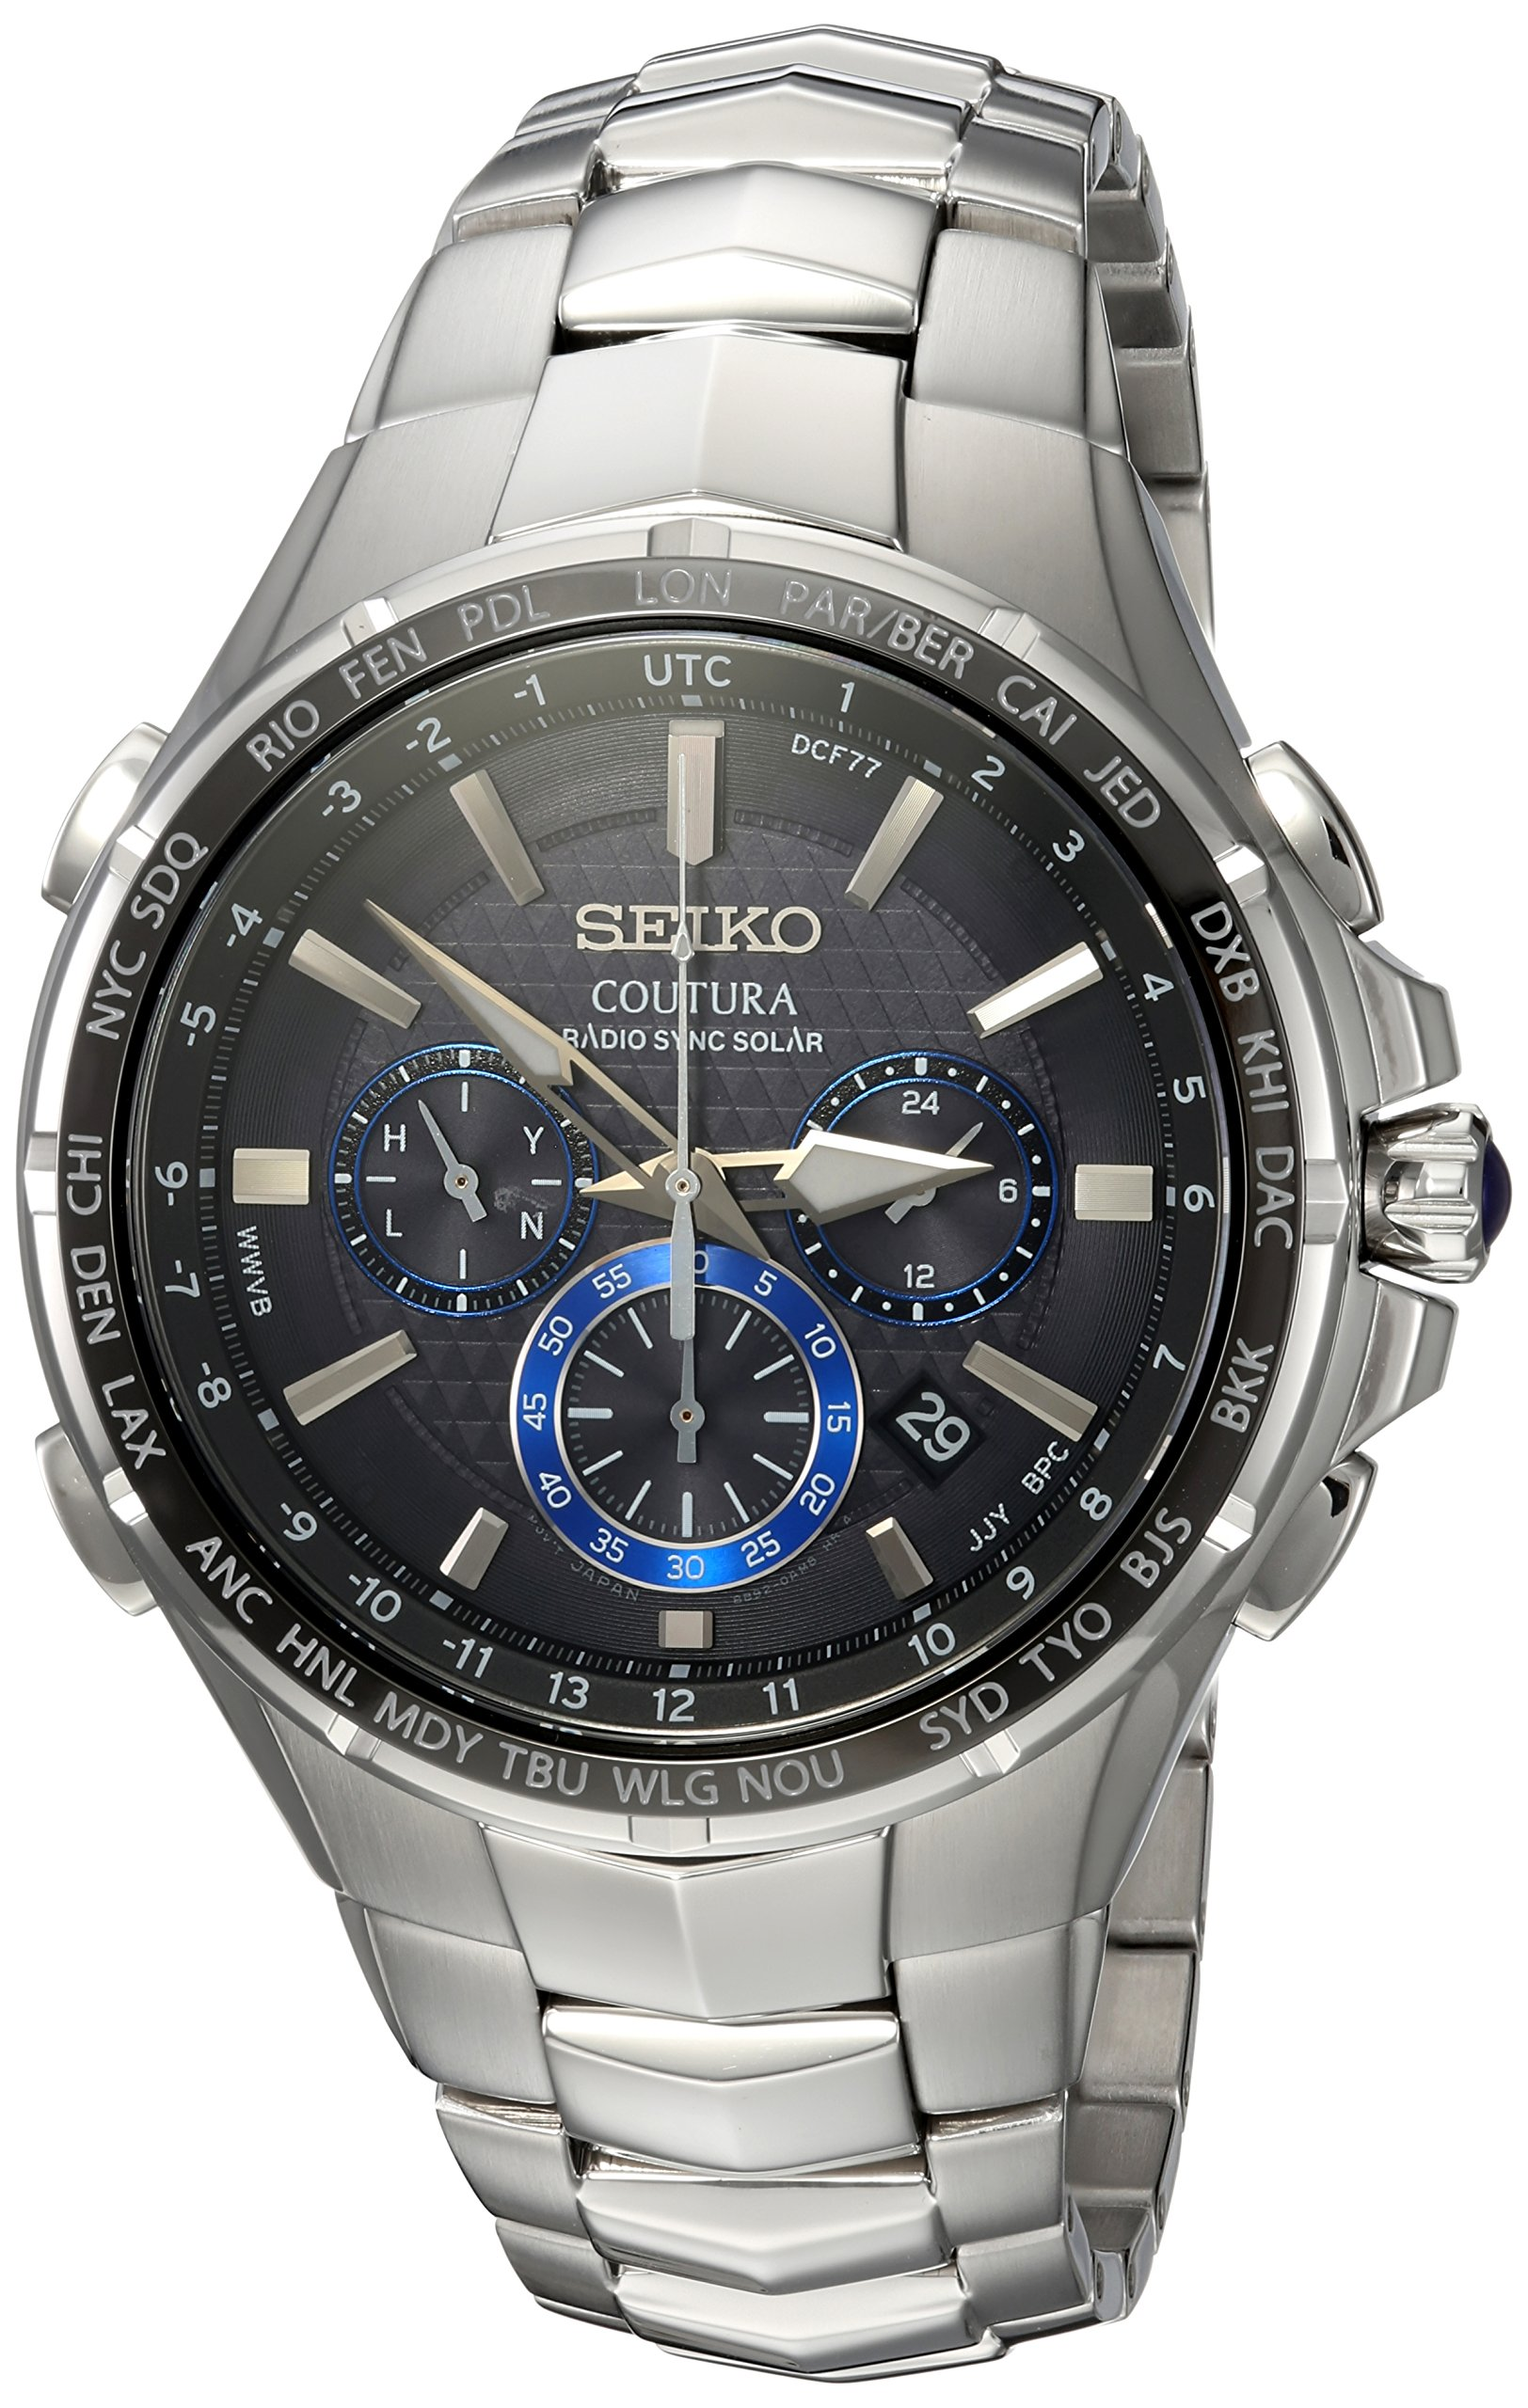 Seiko Men's COUTURA Japanese-Quartz Watch with Stainless-Steel Strap, Silver, 26.3 (Model: SSG009